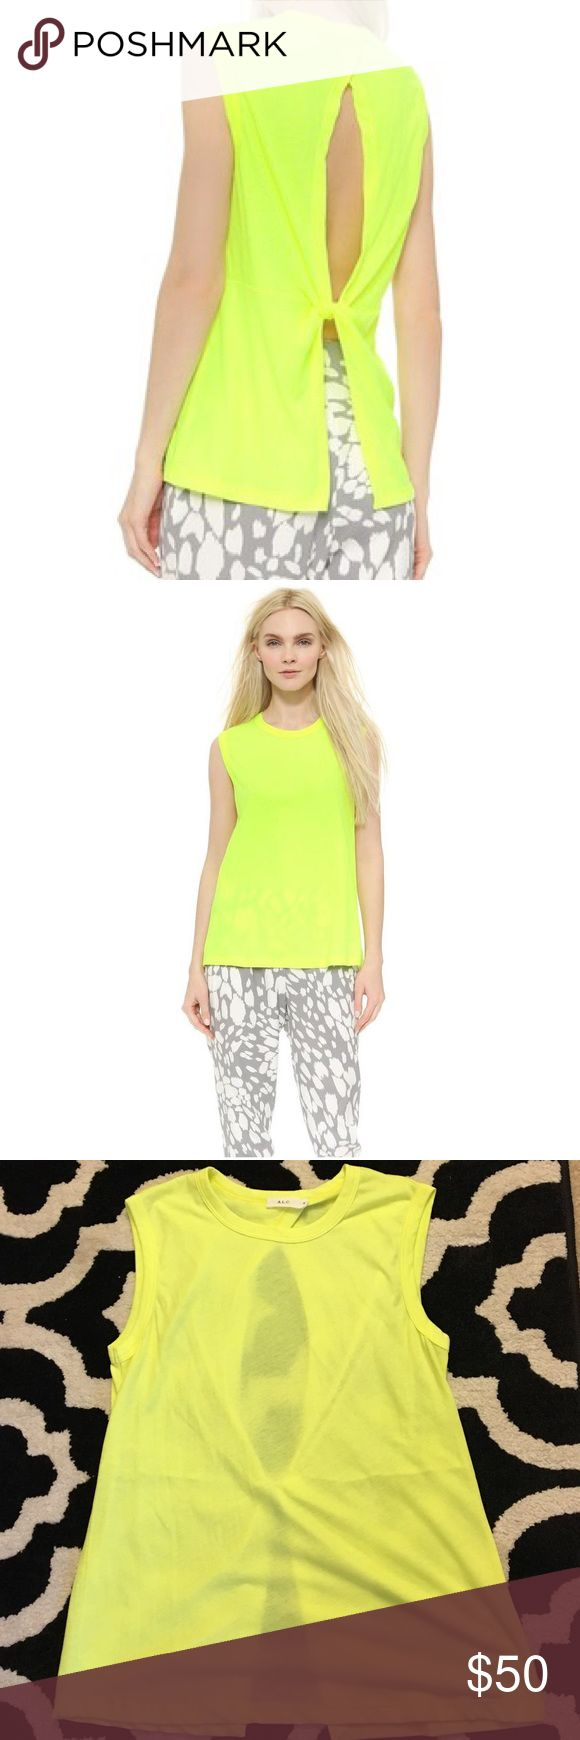 A.L.C Hanover Neon Yellow Top Never been worn, gorgeous bright neon tee! A.L.C. Tops